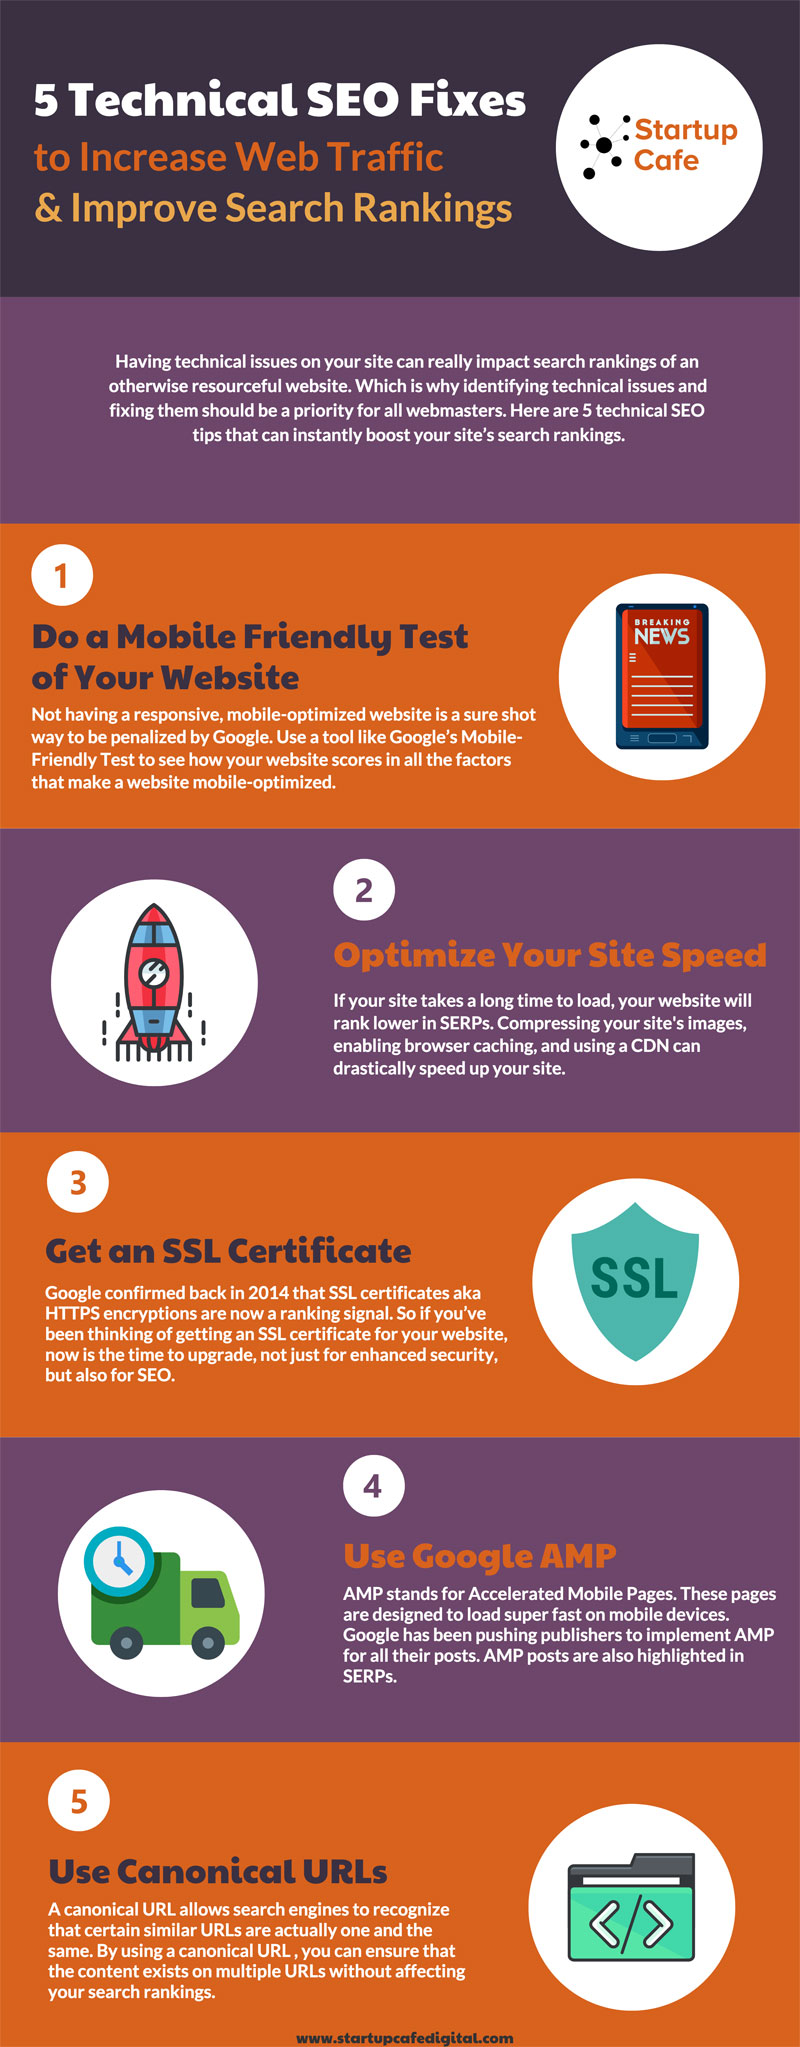 technical seo fixes increase traffic infographic